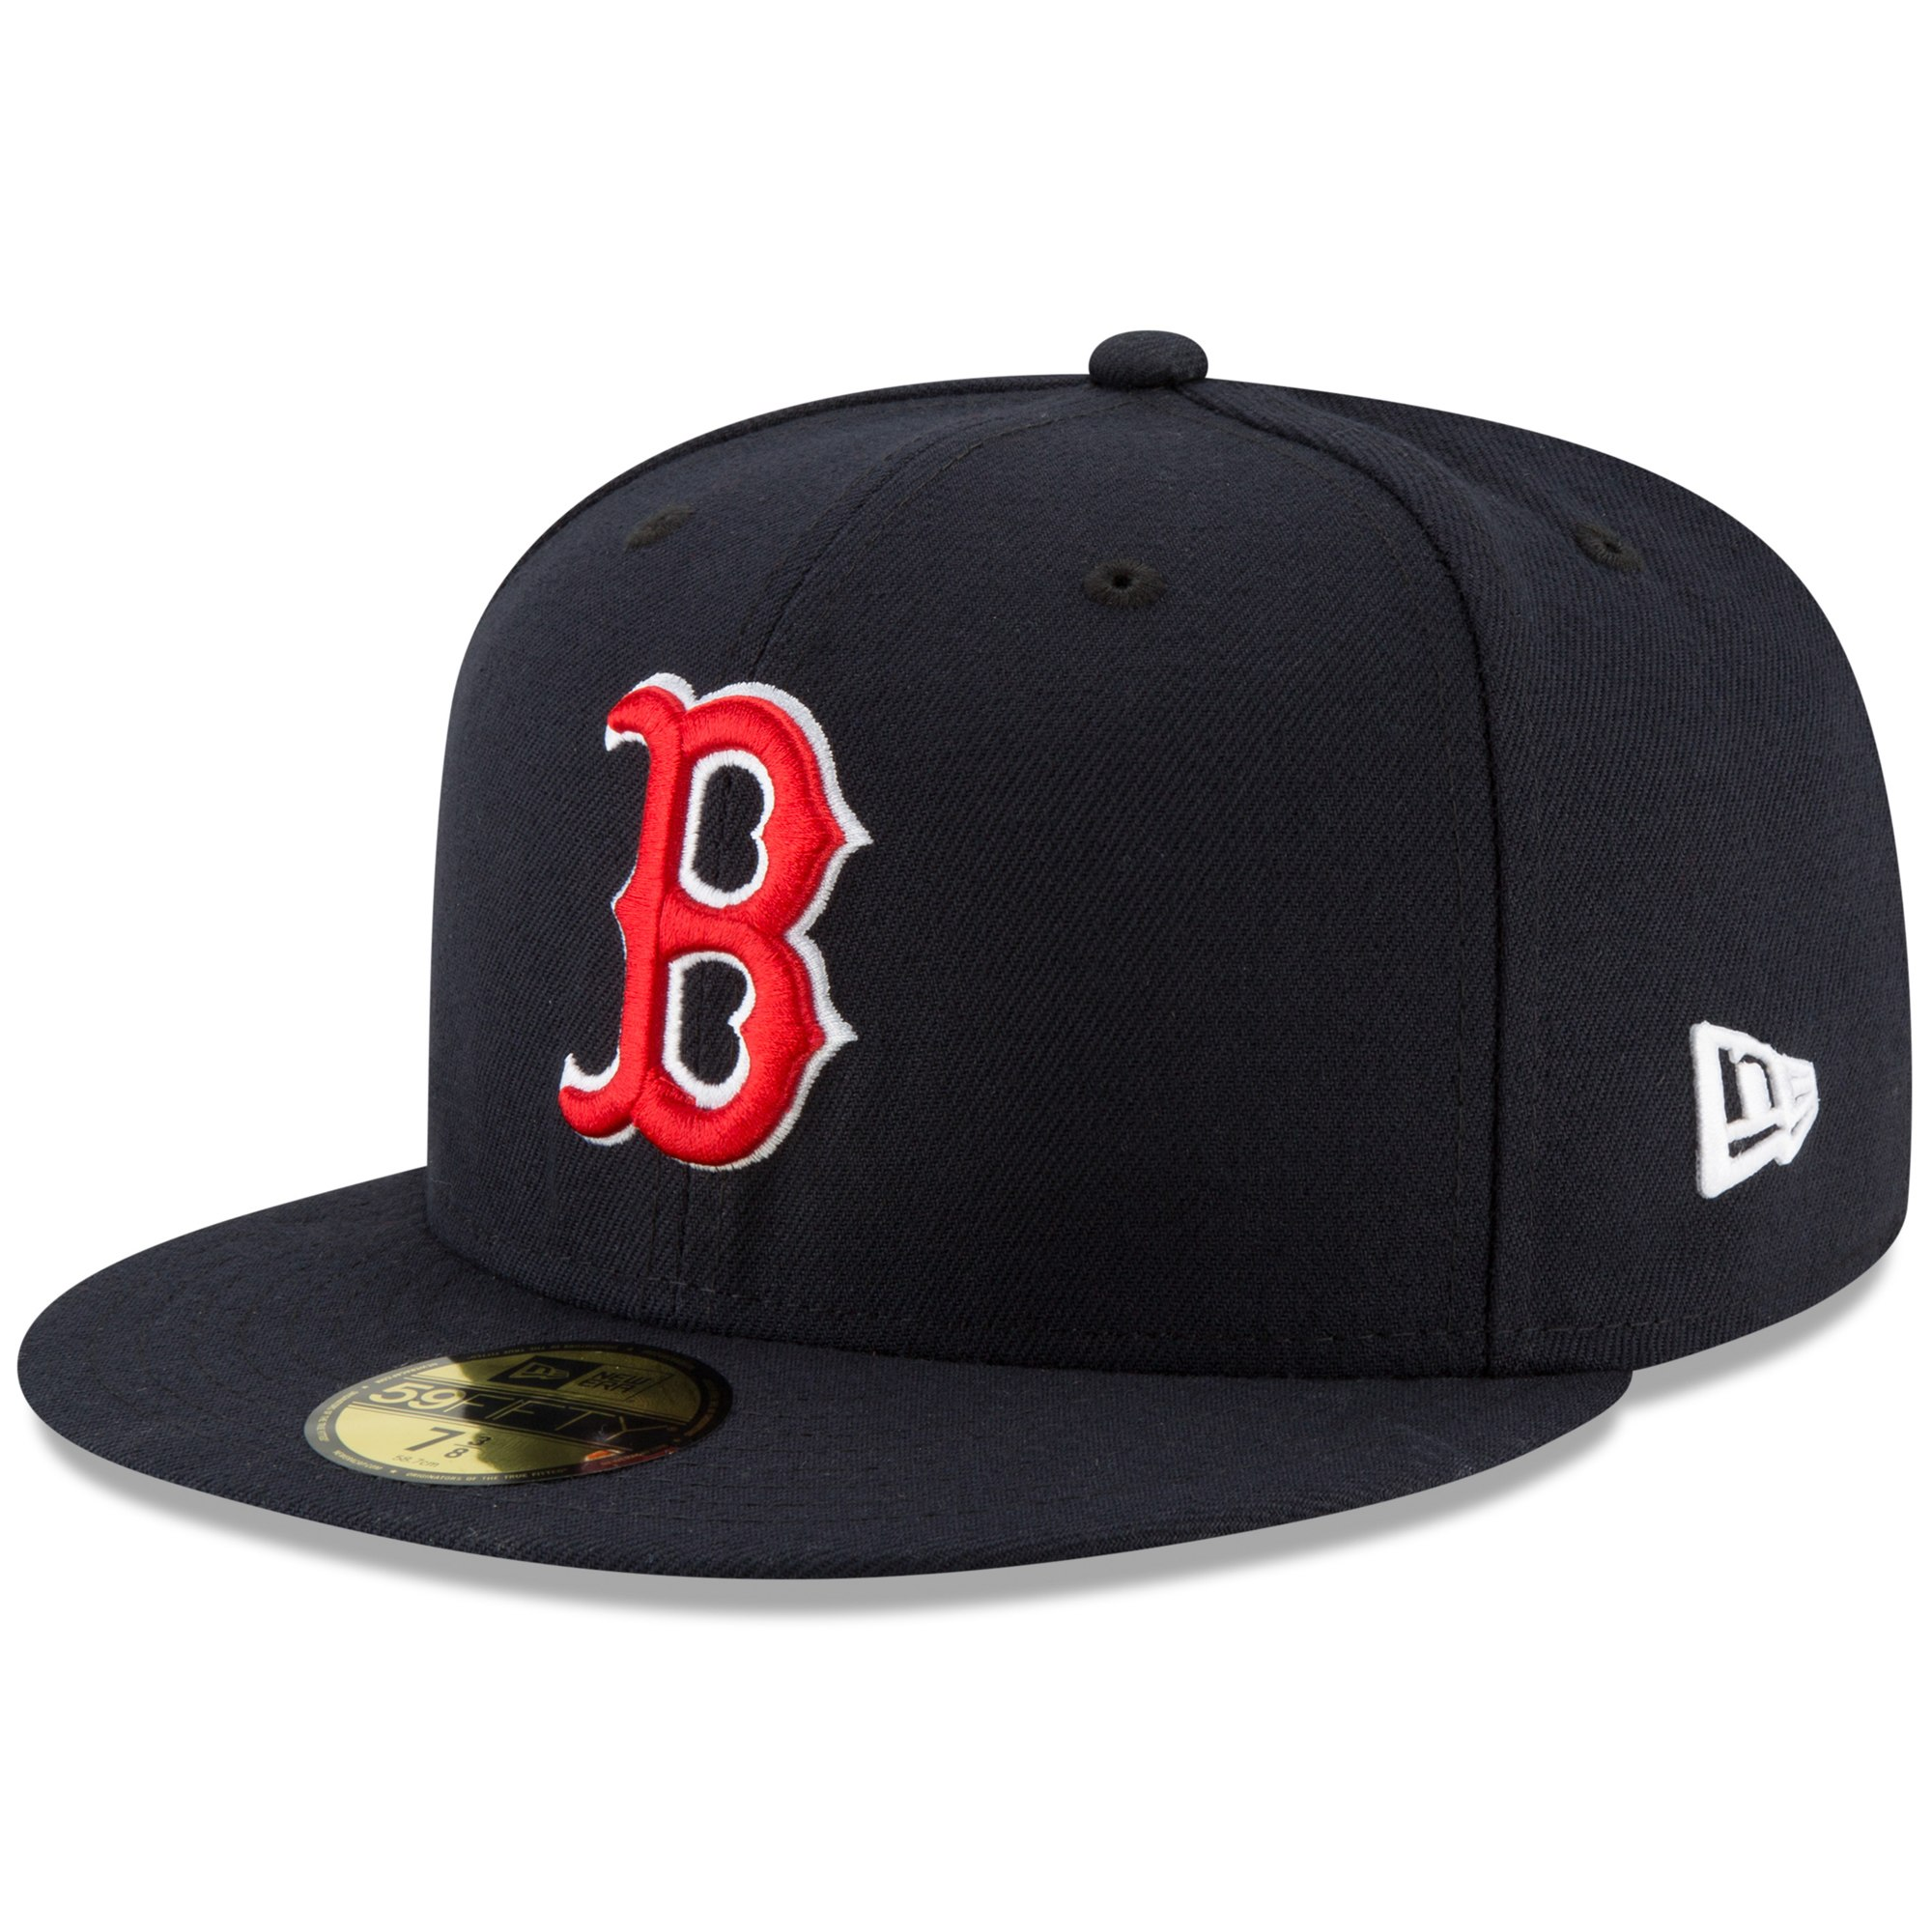 2b54488d7b2c2 New Era 2018 WSC Boston Red Sox Sidepatch 59FIFTY Fitted Hat. click on  thumbnail to zoom